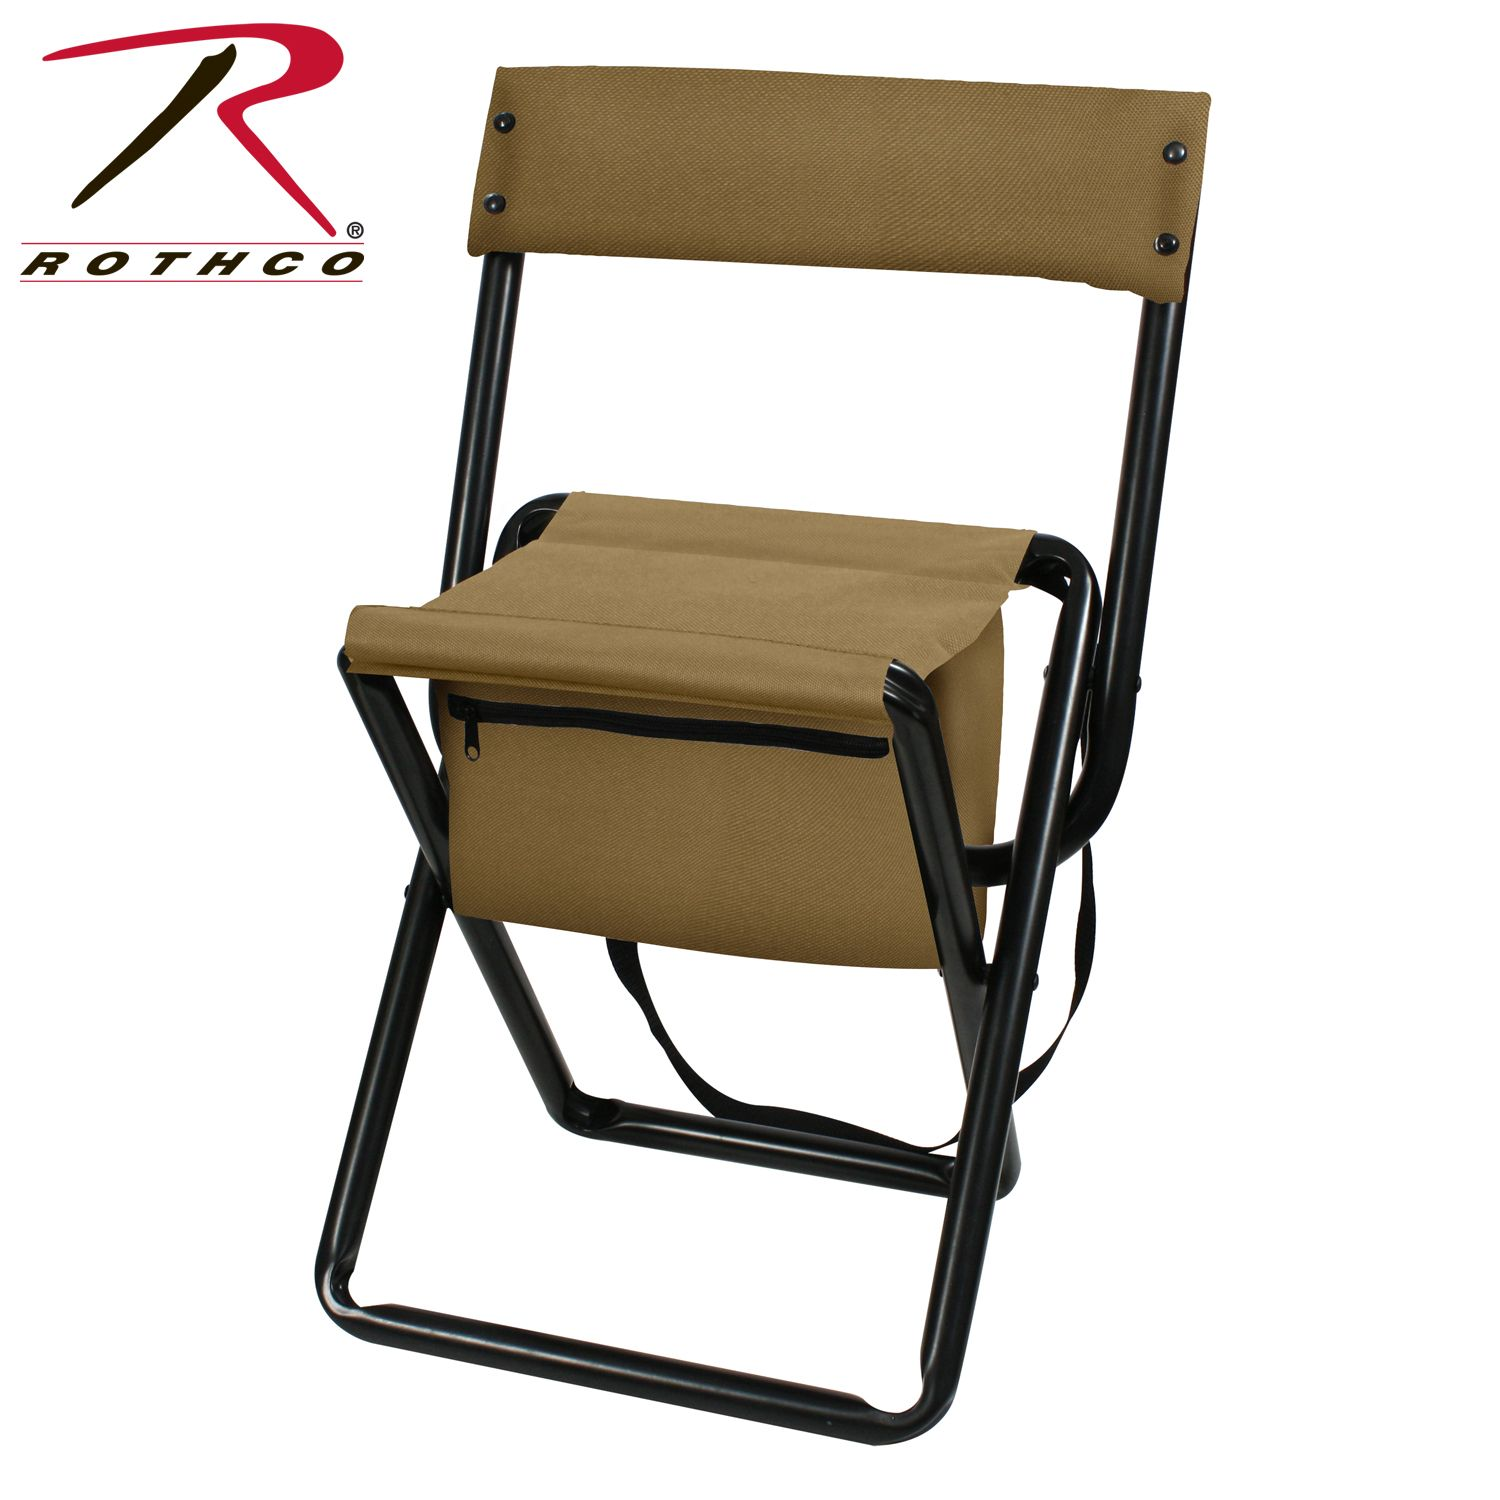 Terrific Buy Rothco Deluxe Folding Stool With Pouch Rothco Online Caraccident5 Cool Chair Designs And Ideas Caraccident5Info